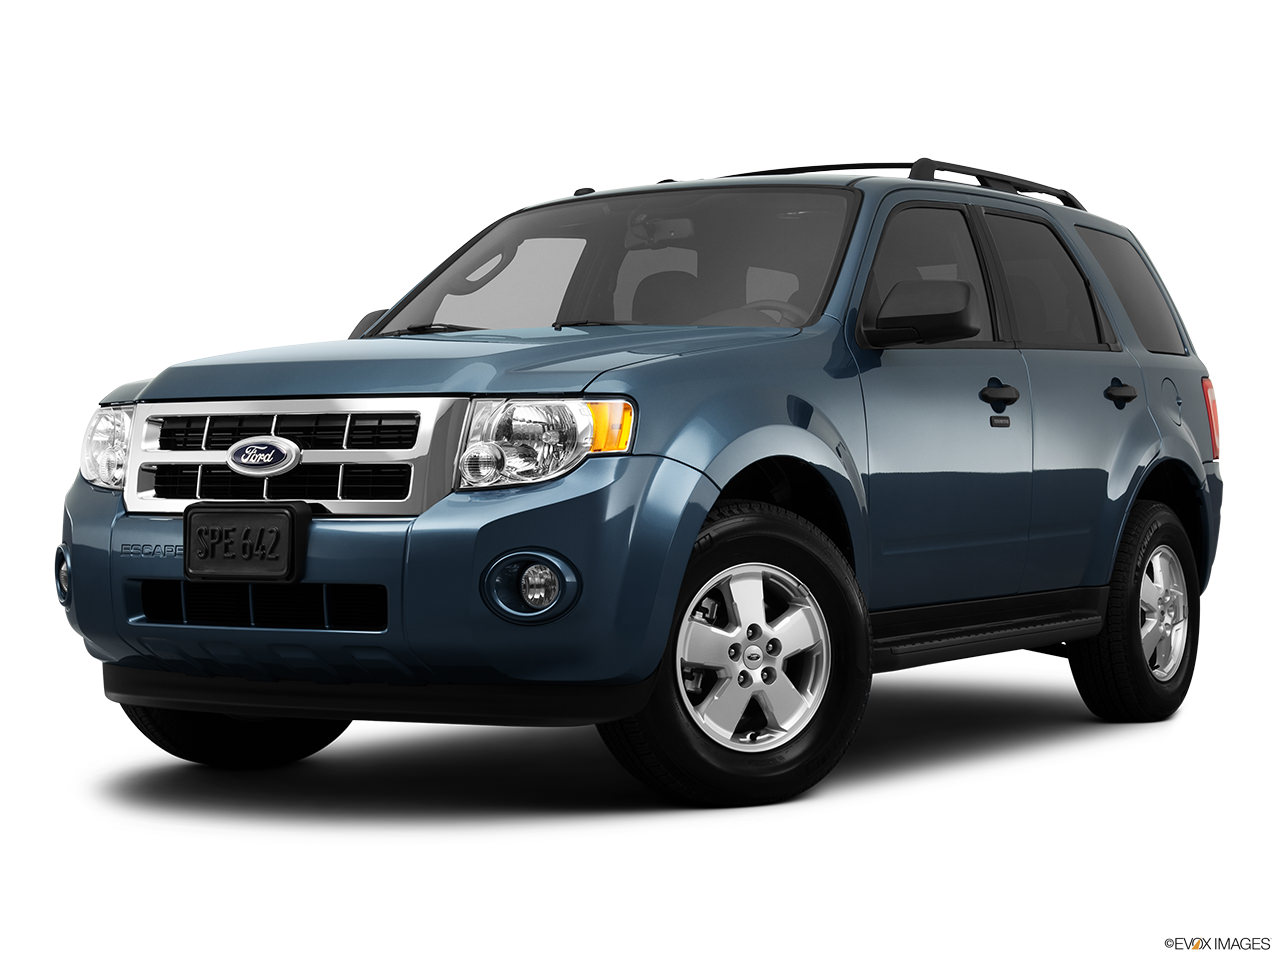 a buyer s guide to the 2012 ford escape yourmechanic advice rh yourmechanic com 2012 ford escape owners manual for sale 2012 ford escape owners manual download